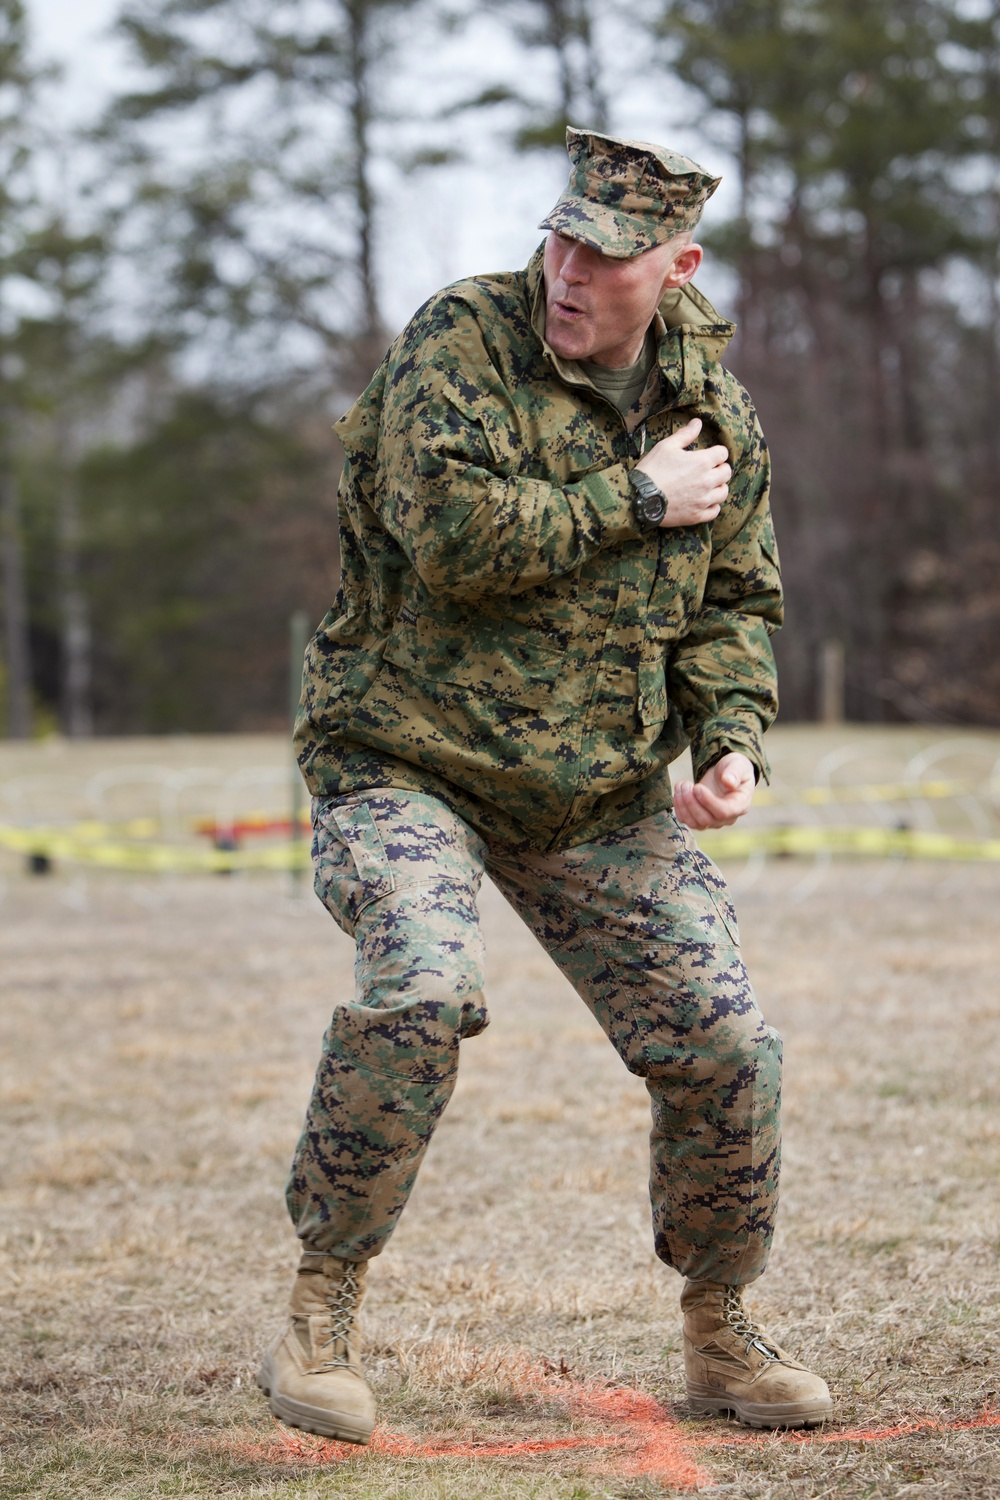 New Marine Corps non-lethal weapon heats things up